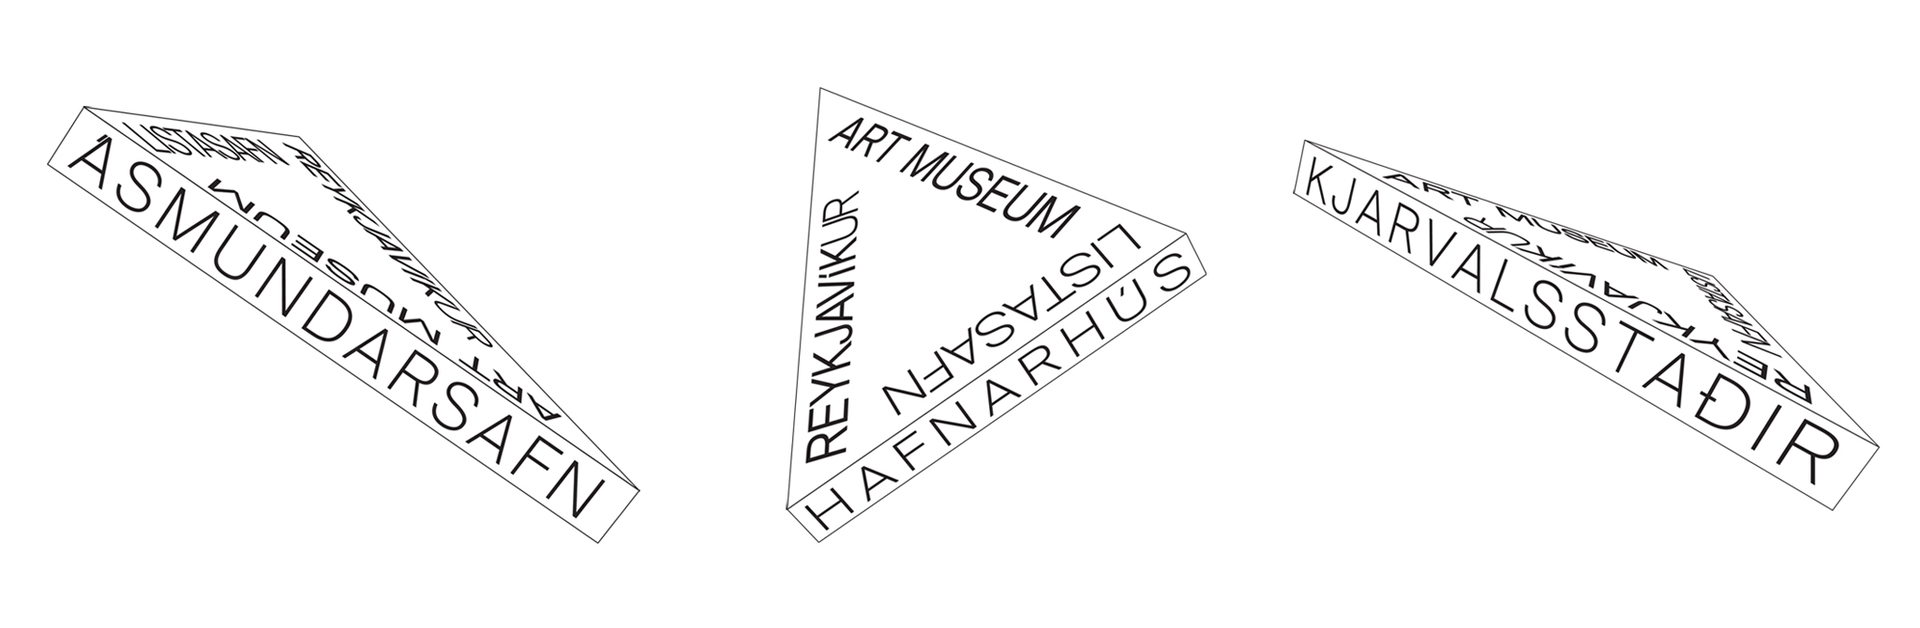 The triangular-shaped logo drew inspiration from the connection between the three houses, when connected on the map, the three museums form a very similar shape to the logo that we created.